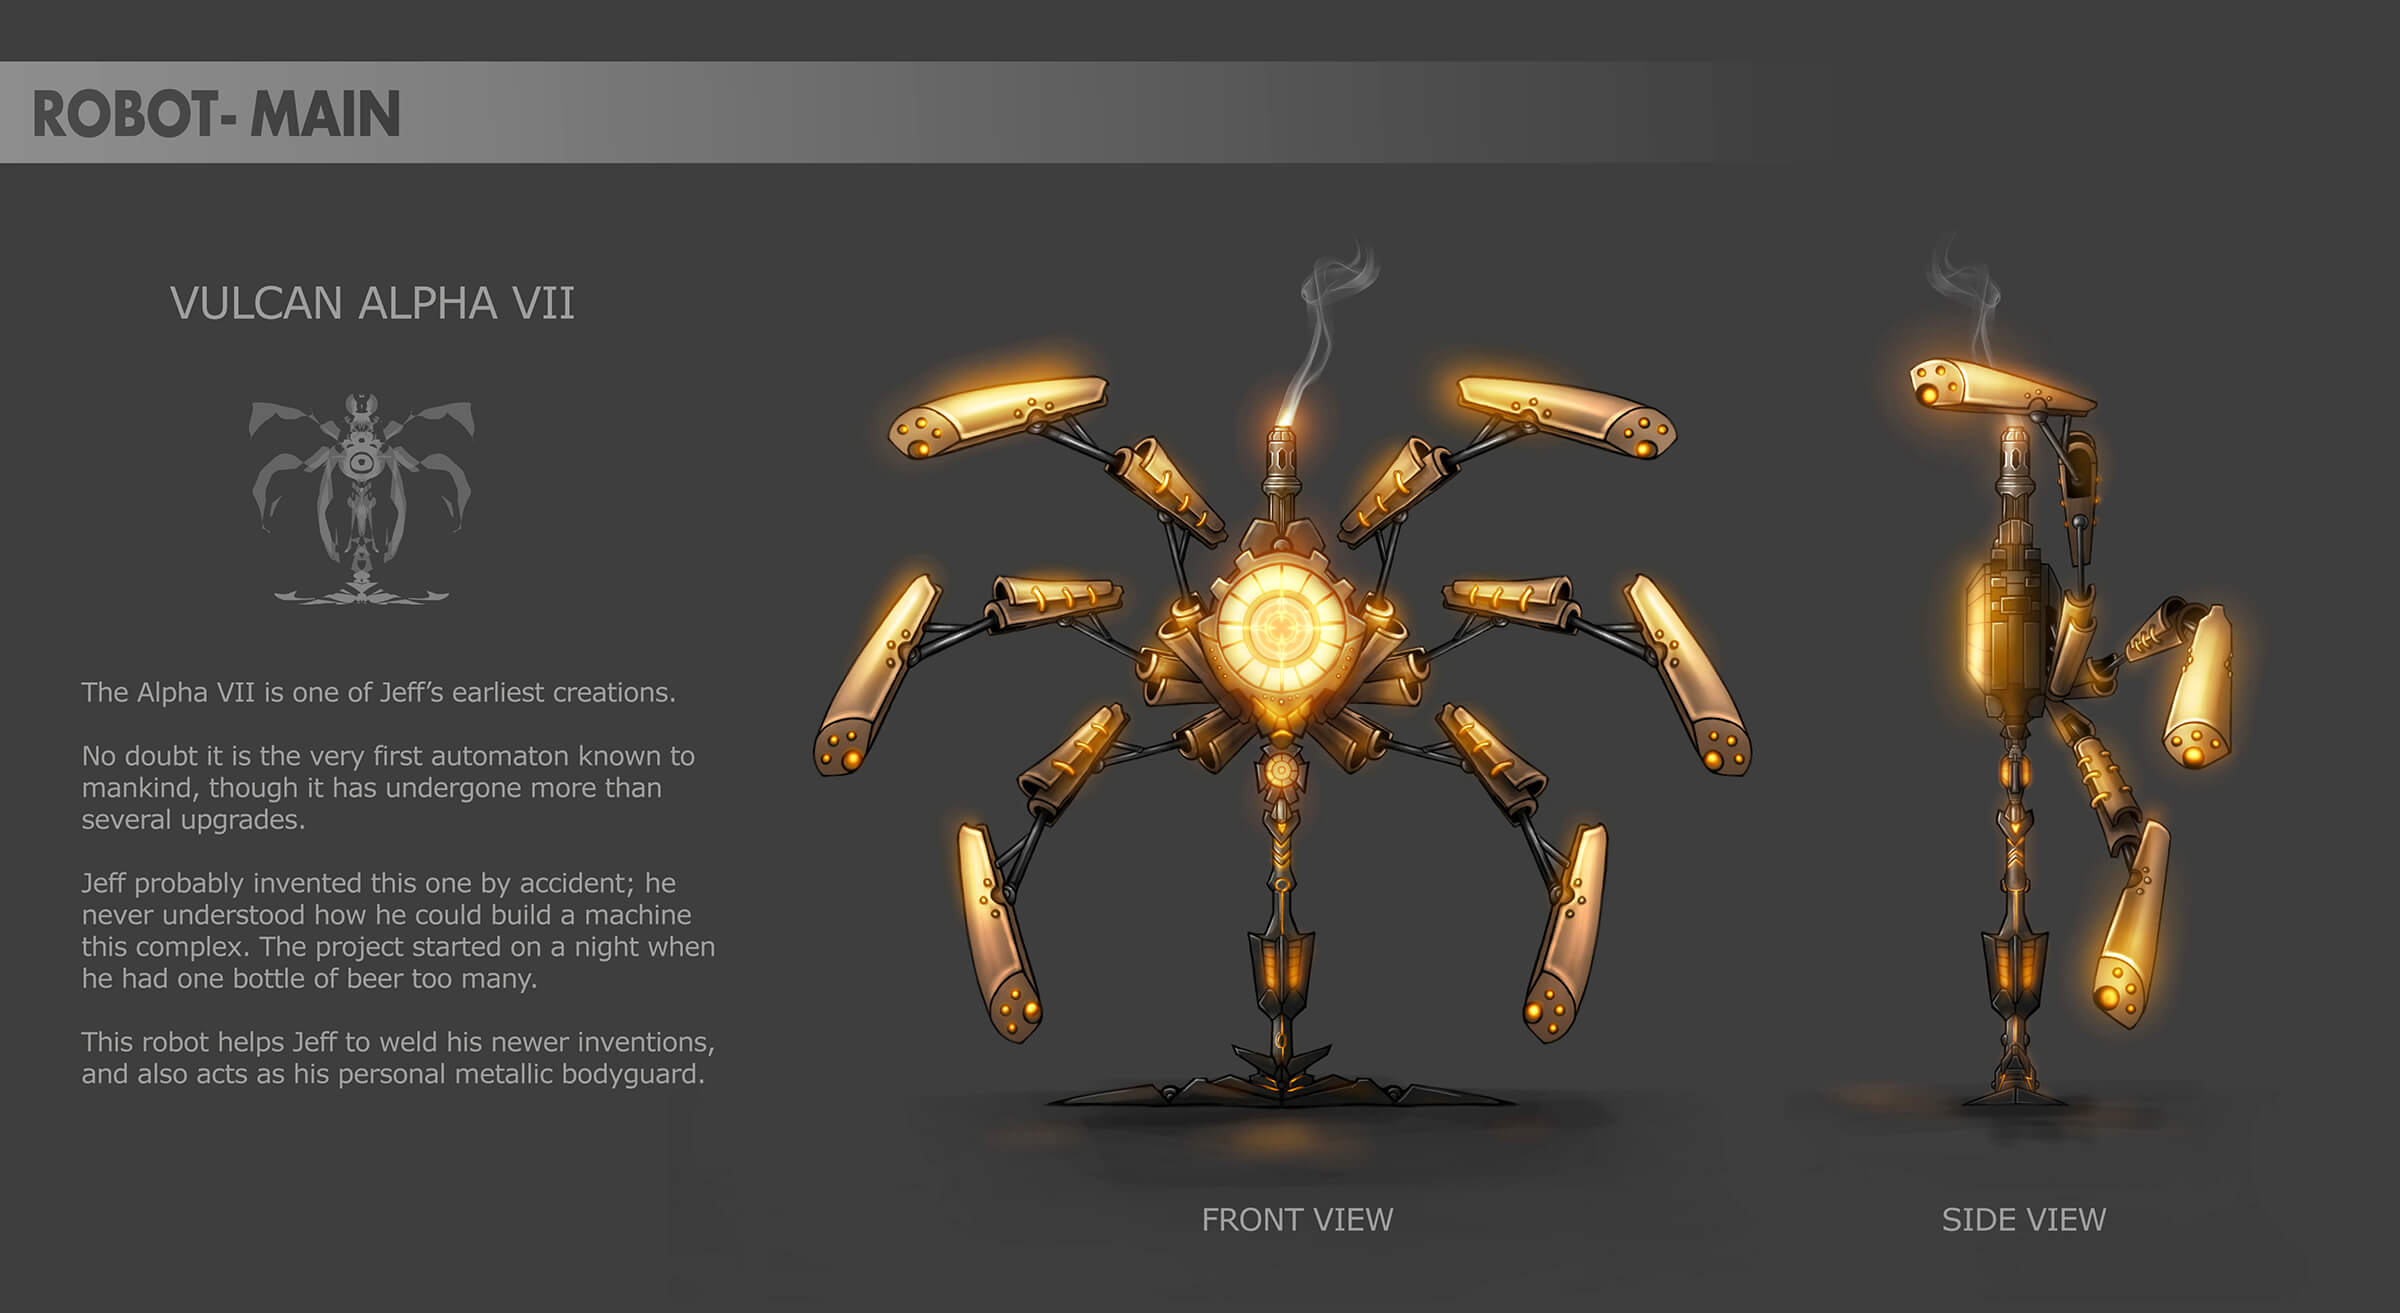 "Concept art of a multi-legged golden robot resembling an upright spider, along with name ""Vulcan Alpha VII"" and description."